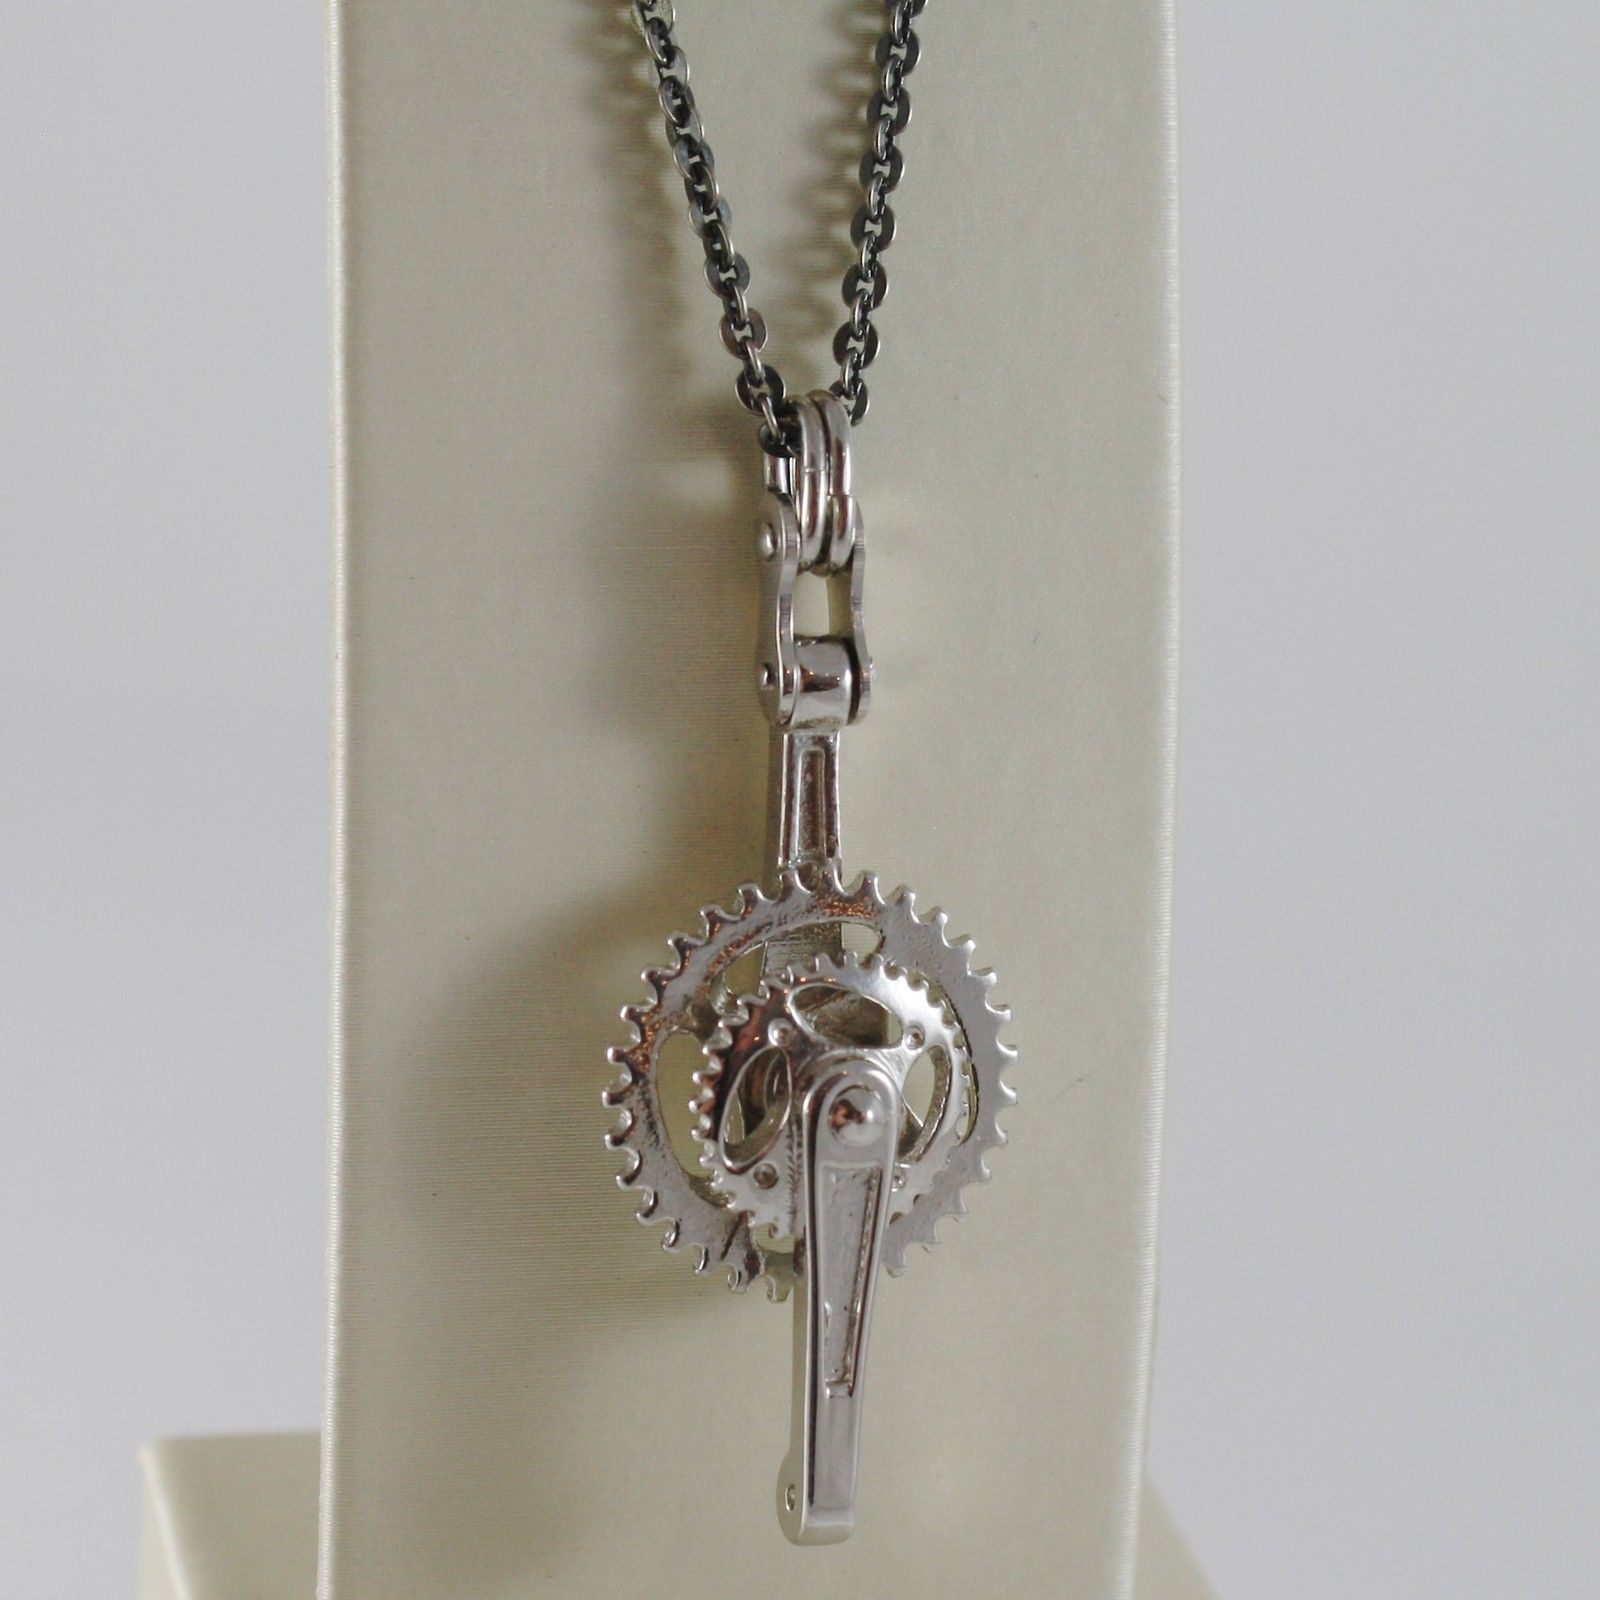 925 BURNISHED SILVER NECKLACE WITH BIKE CRANKSET CYCLING CRANK MADE IN ITALY